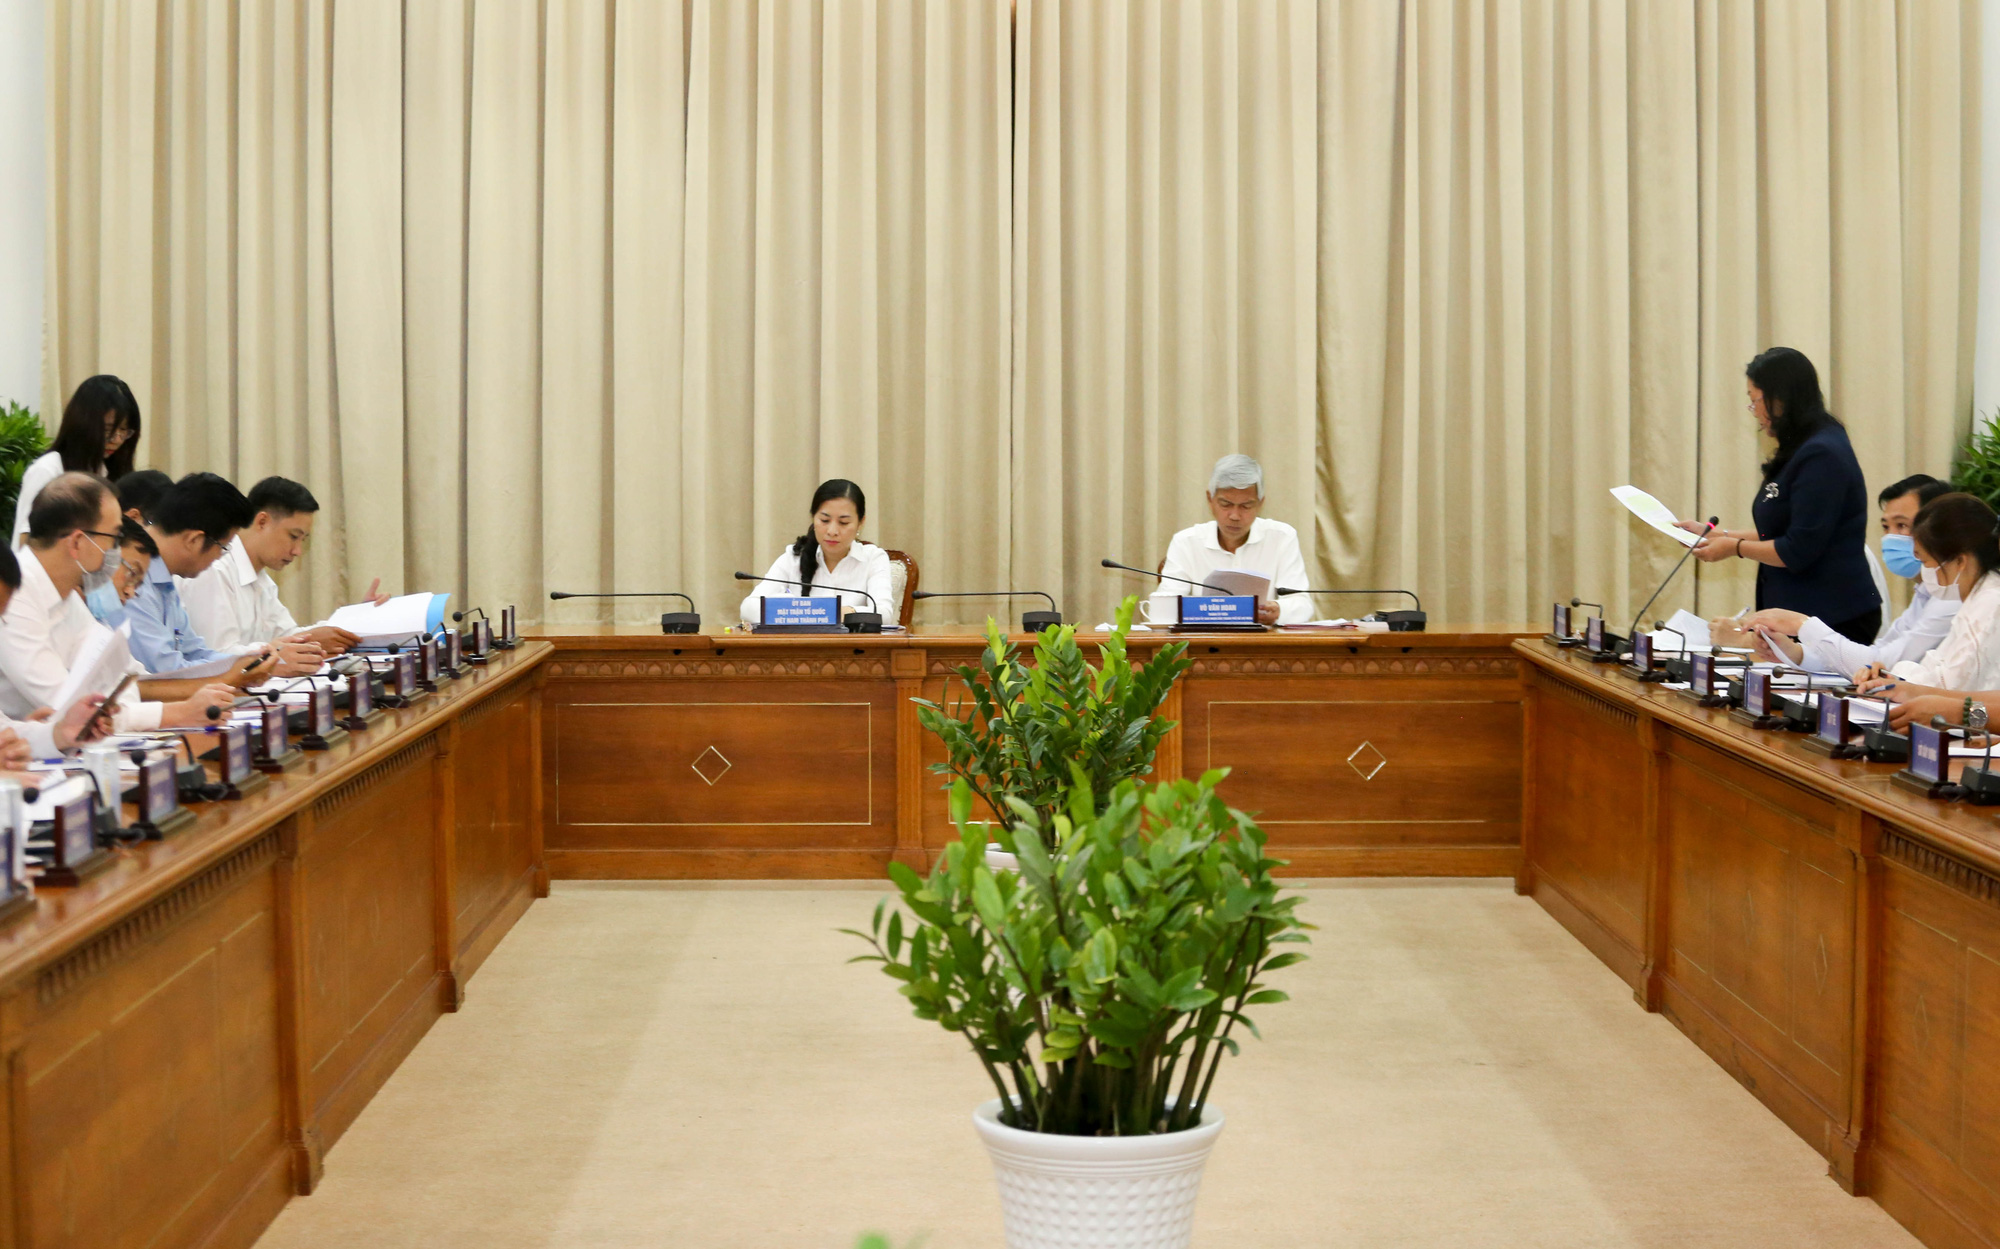 Vice-chairman of the Ho Chi Minh City People's Committee Vo Van Hoan chairs a meeting on noise violations on April 26, 2021. Photo: Thao Le / Tuoi Tre